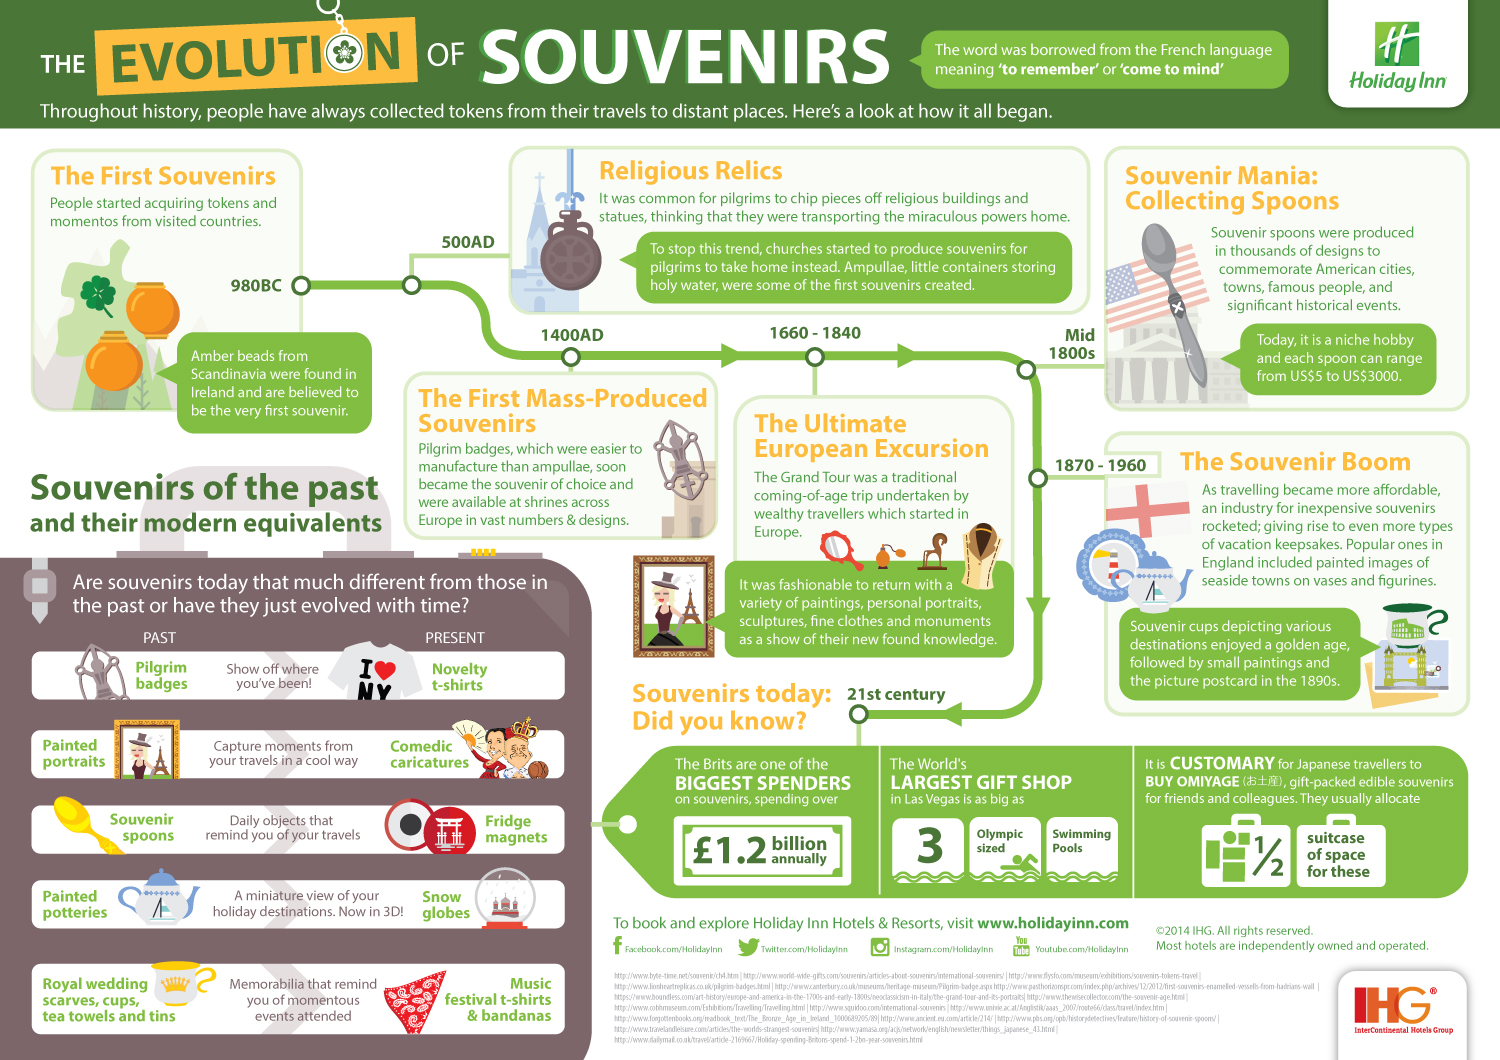 Evolution of Souvenirs